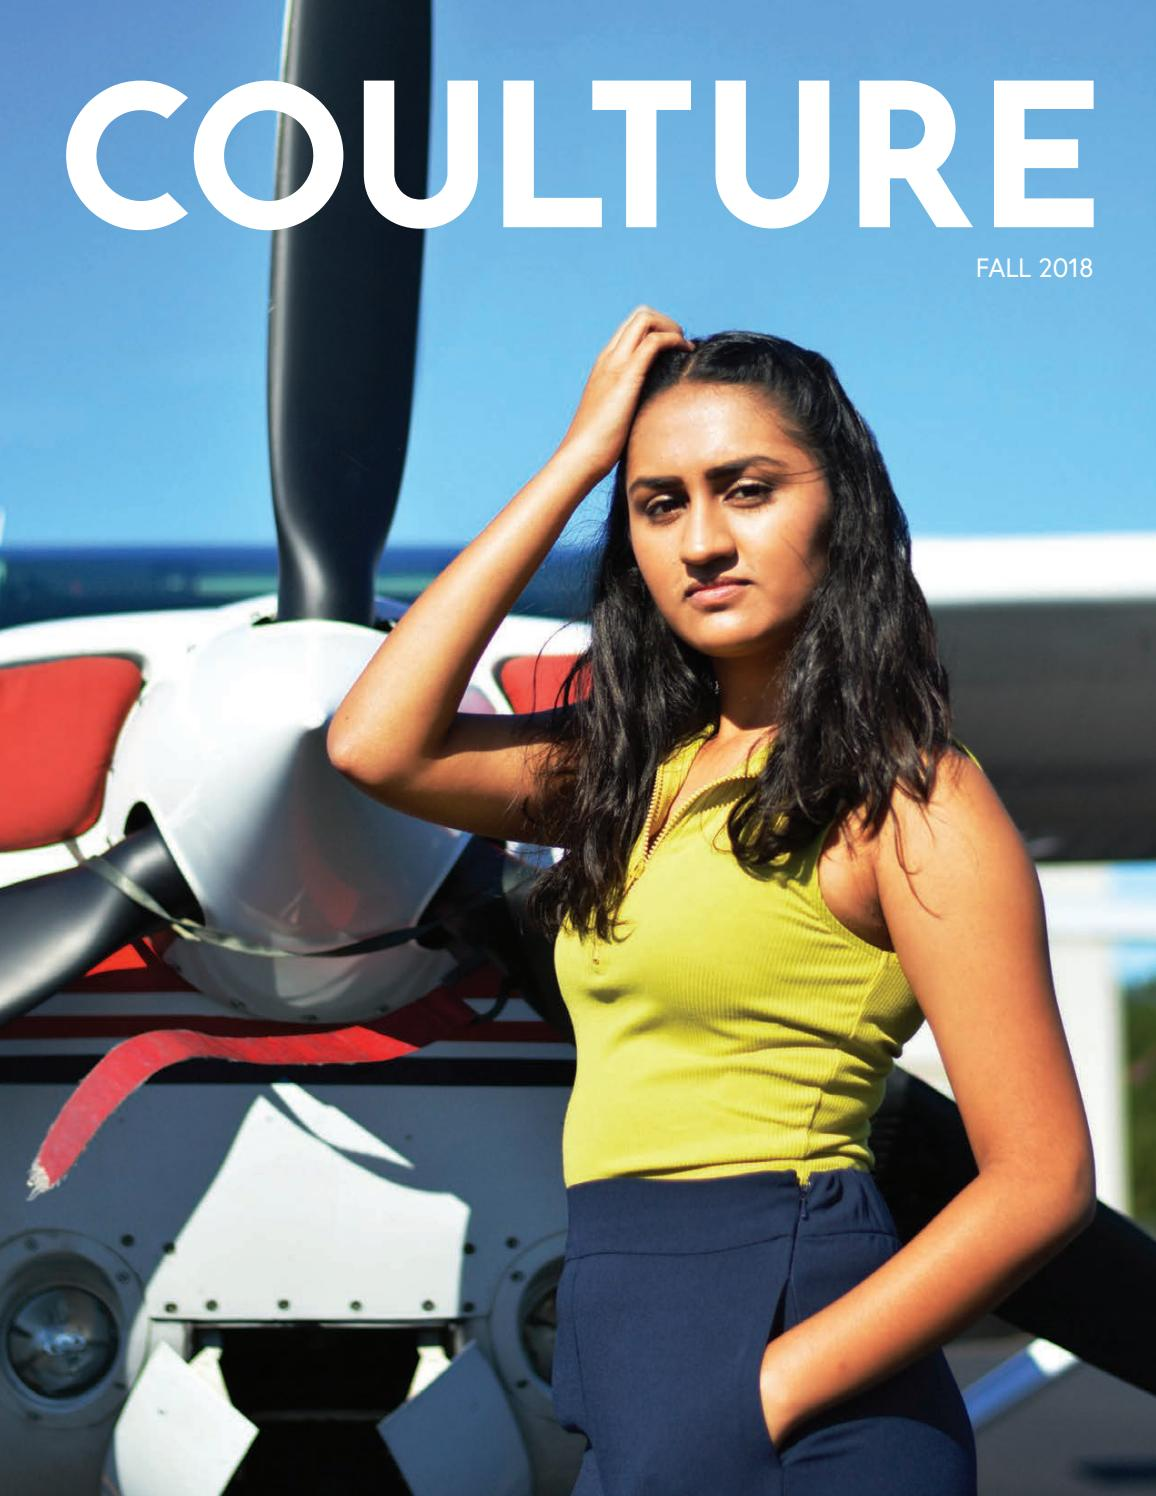 a28f409e96e0 Coulture Fall Winter 2018 by Coulture Magazine - issuu